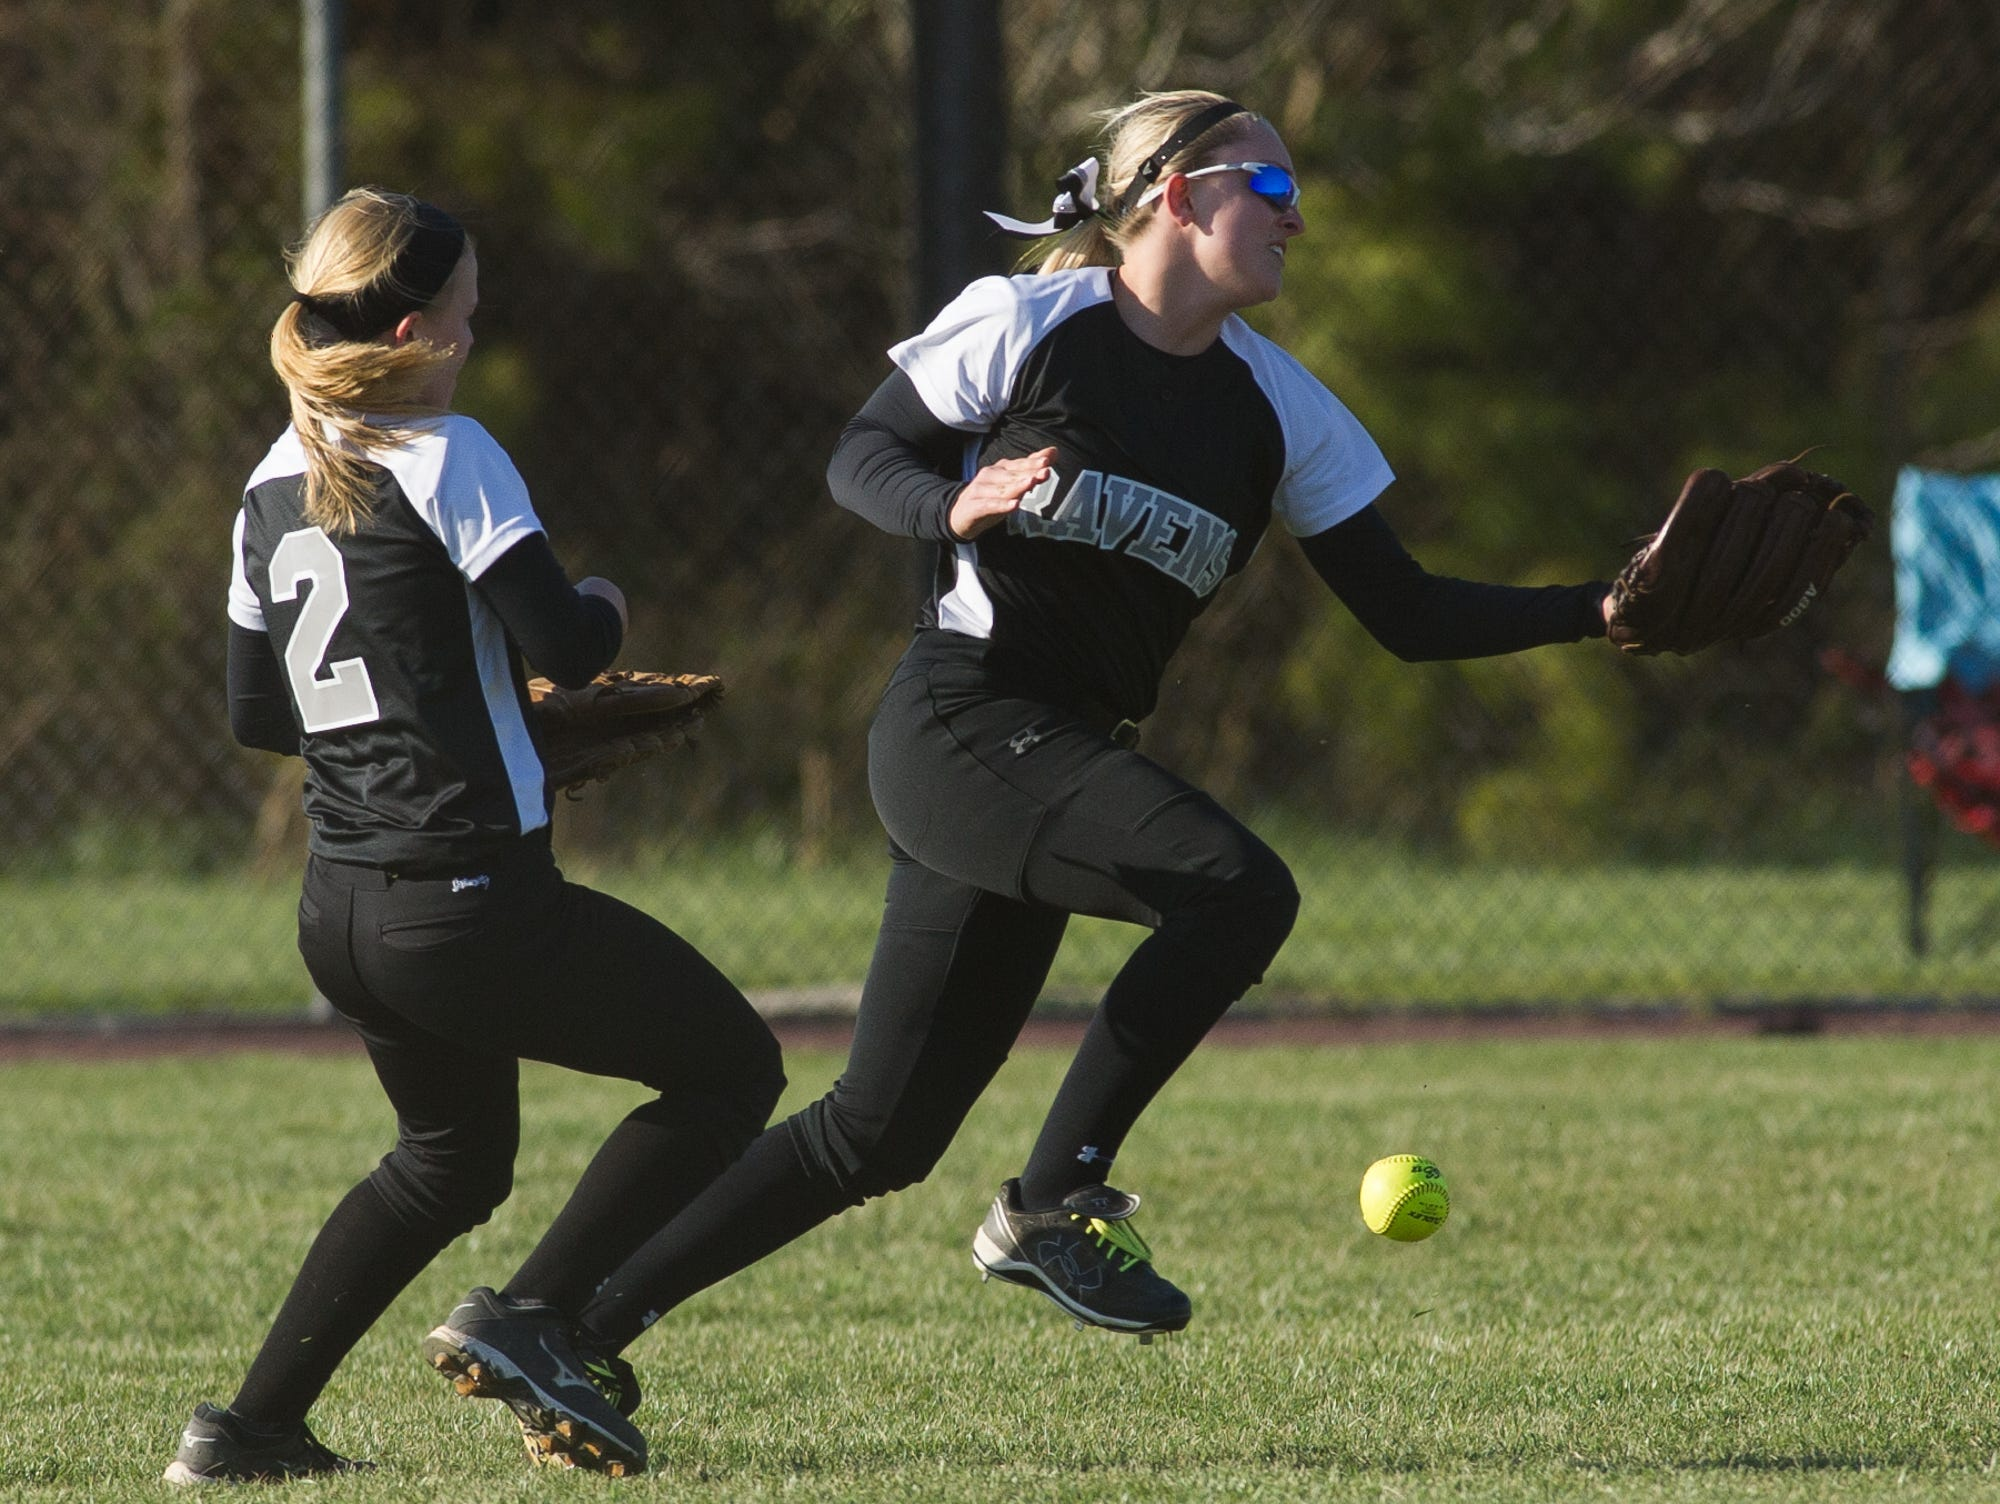 Sussex Tech's Nicole Hovatter (2), left and teammate Brooke Ward (4) miss a fly ball in their out field in their game against Sussex Central.